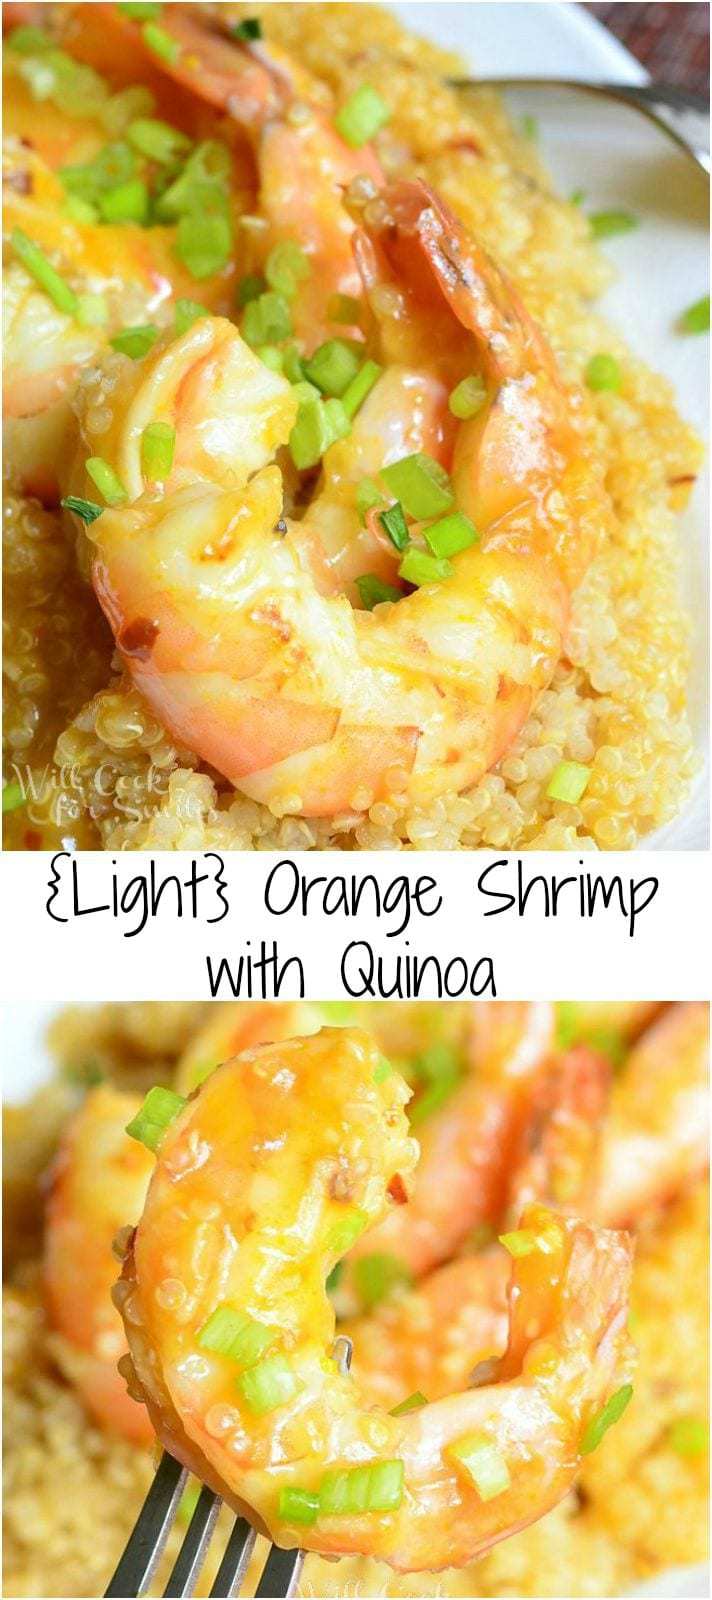 Light Orange Shrimp with Quinoa! from willcookforsmiles.com #easy dinner #lightdinner